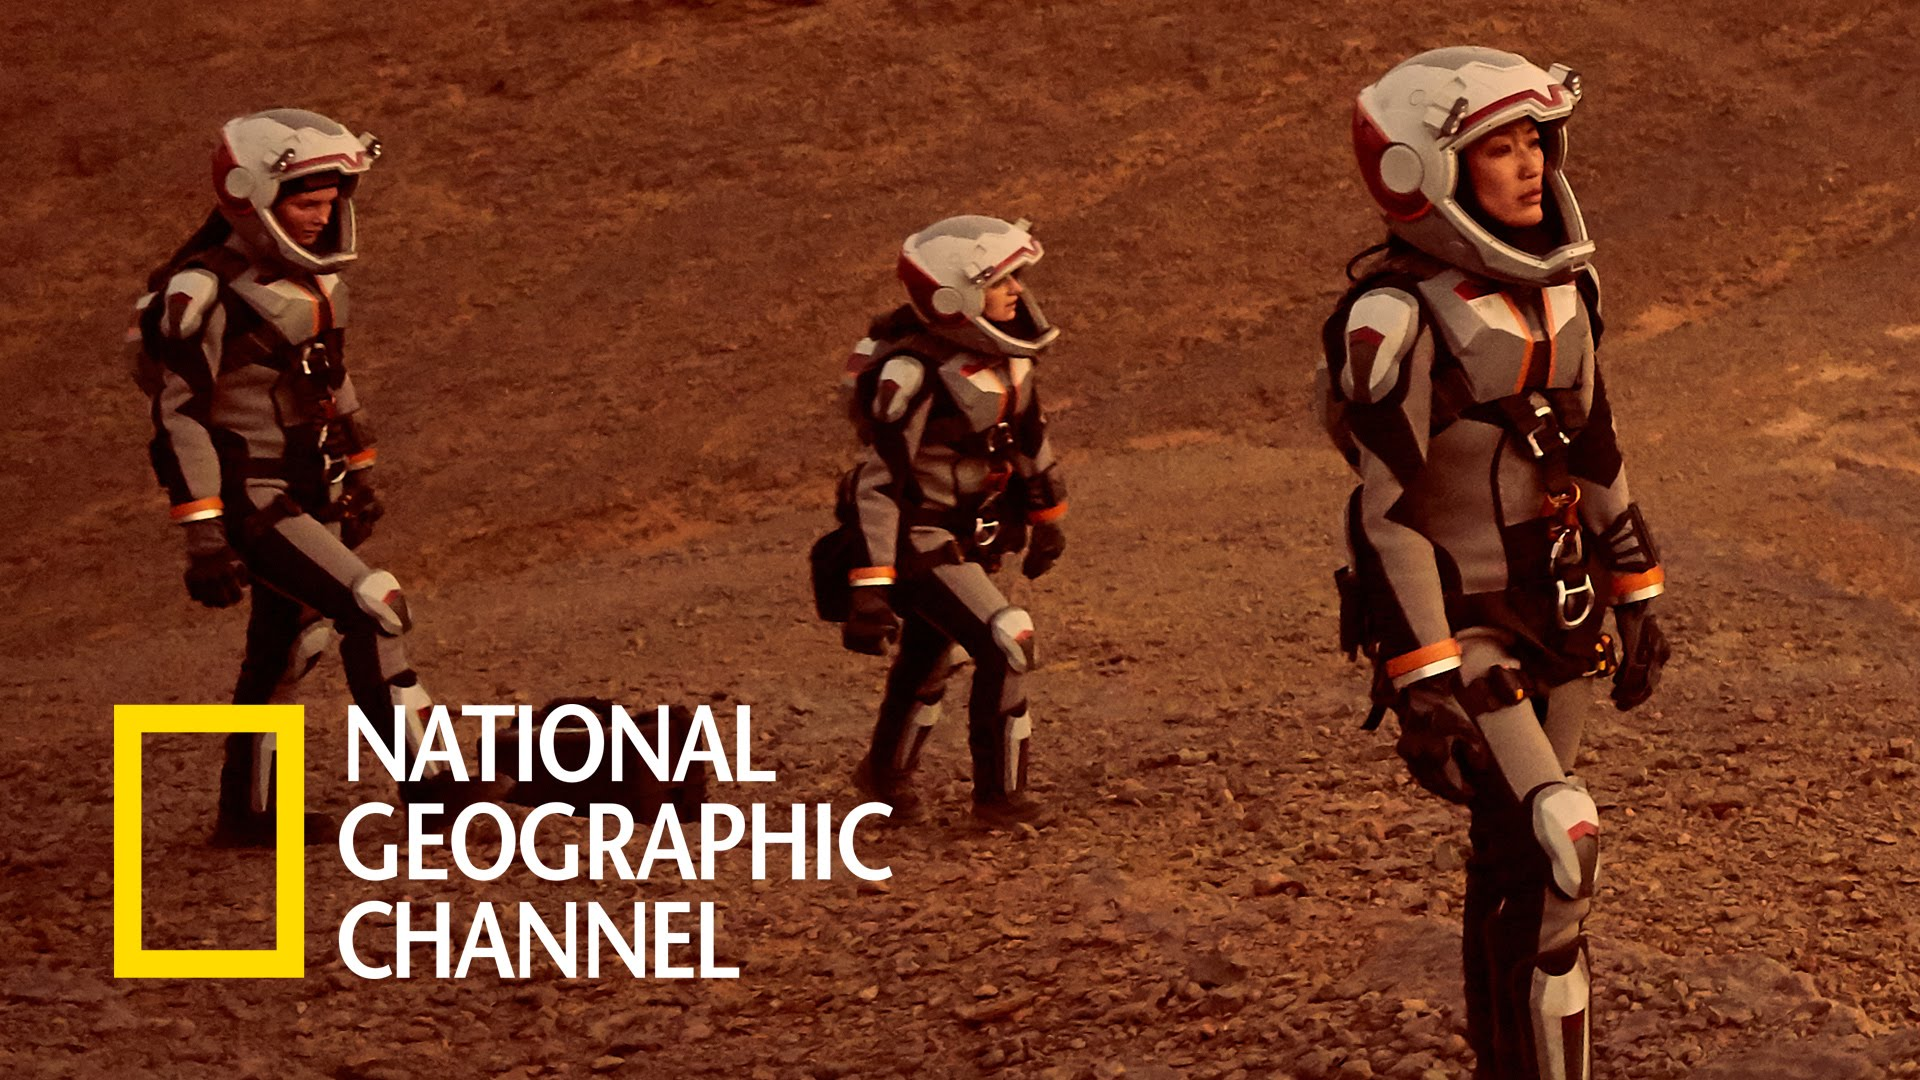 Mars e National Geographic, un viaggio interplanetario